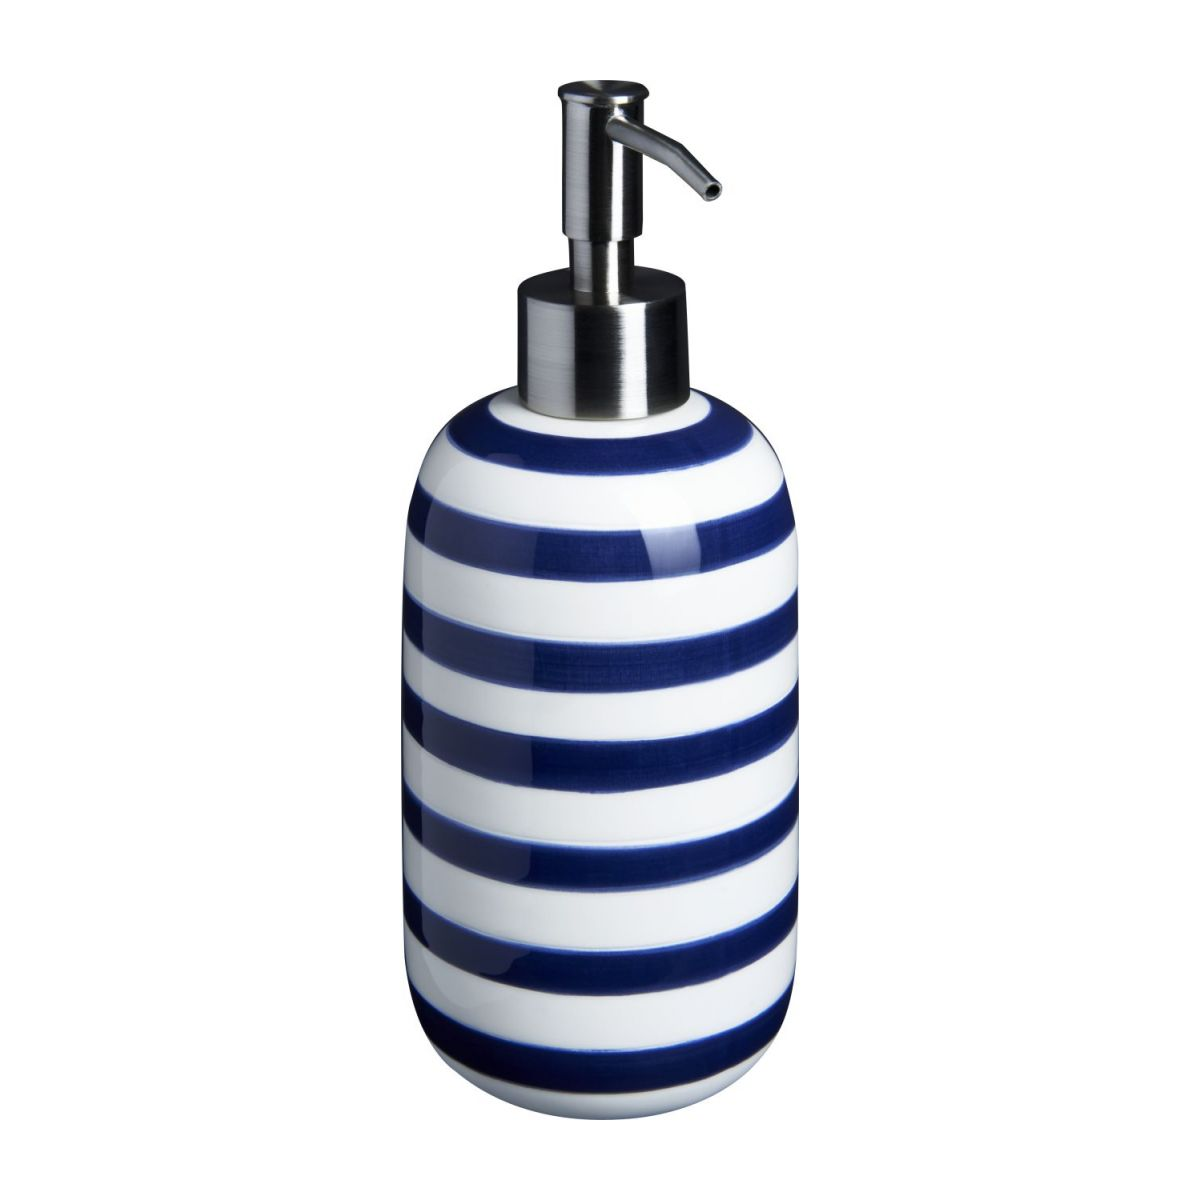 Soap dispenser n°1